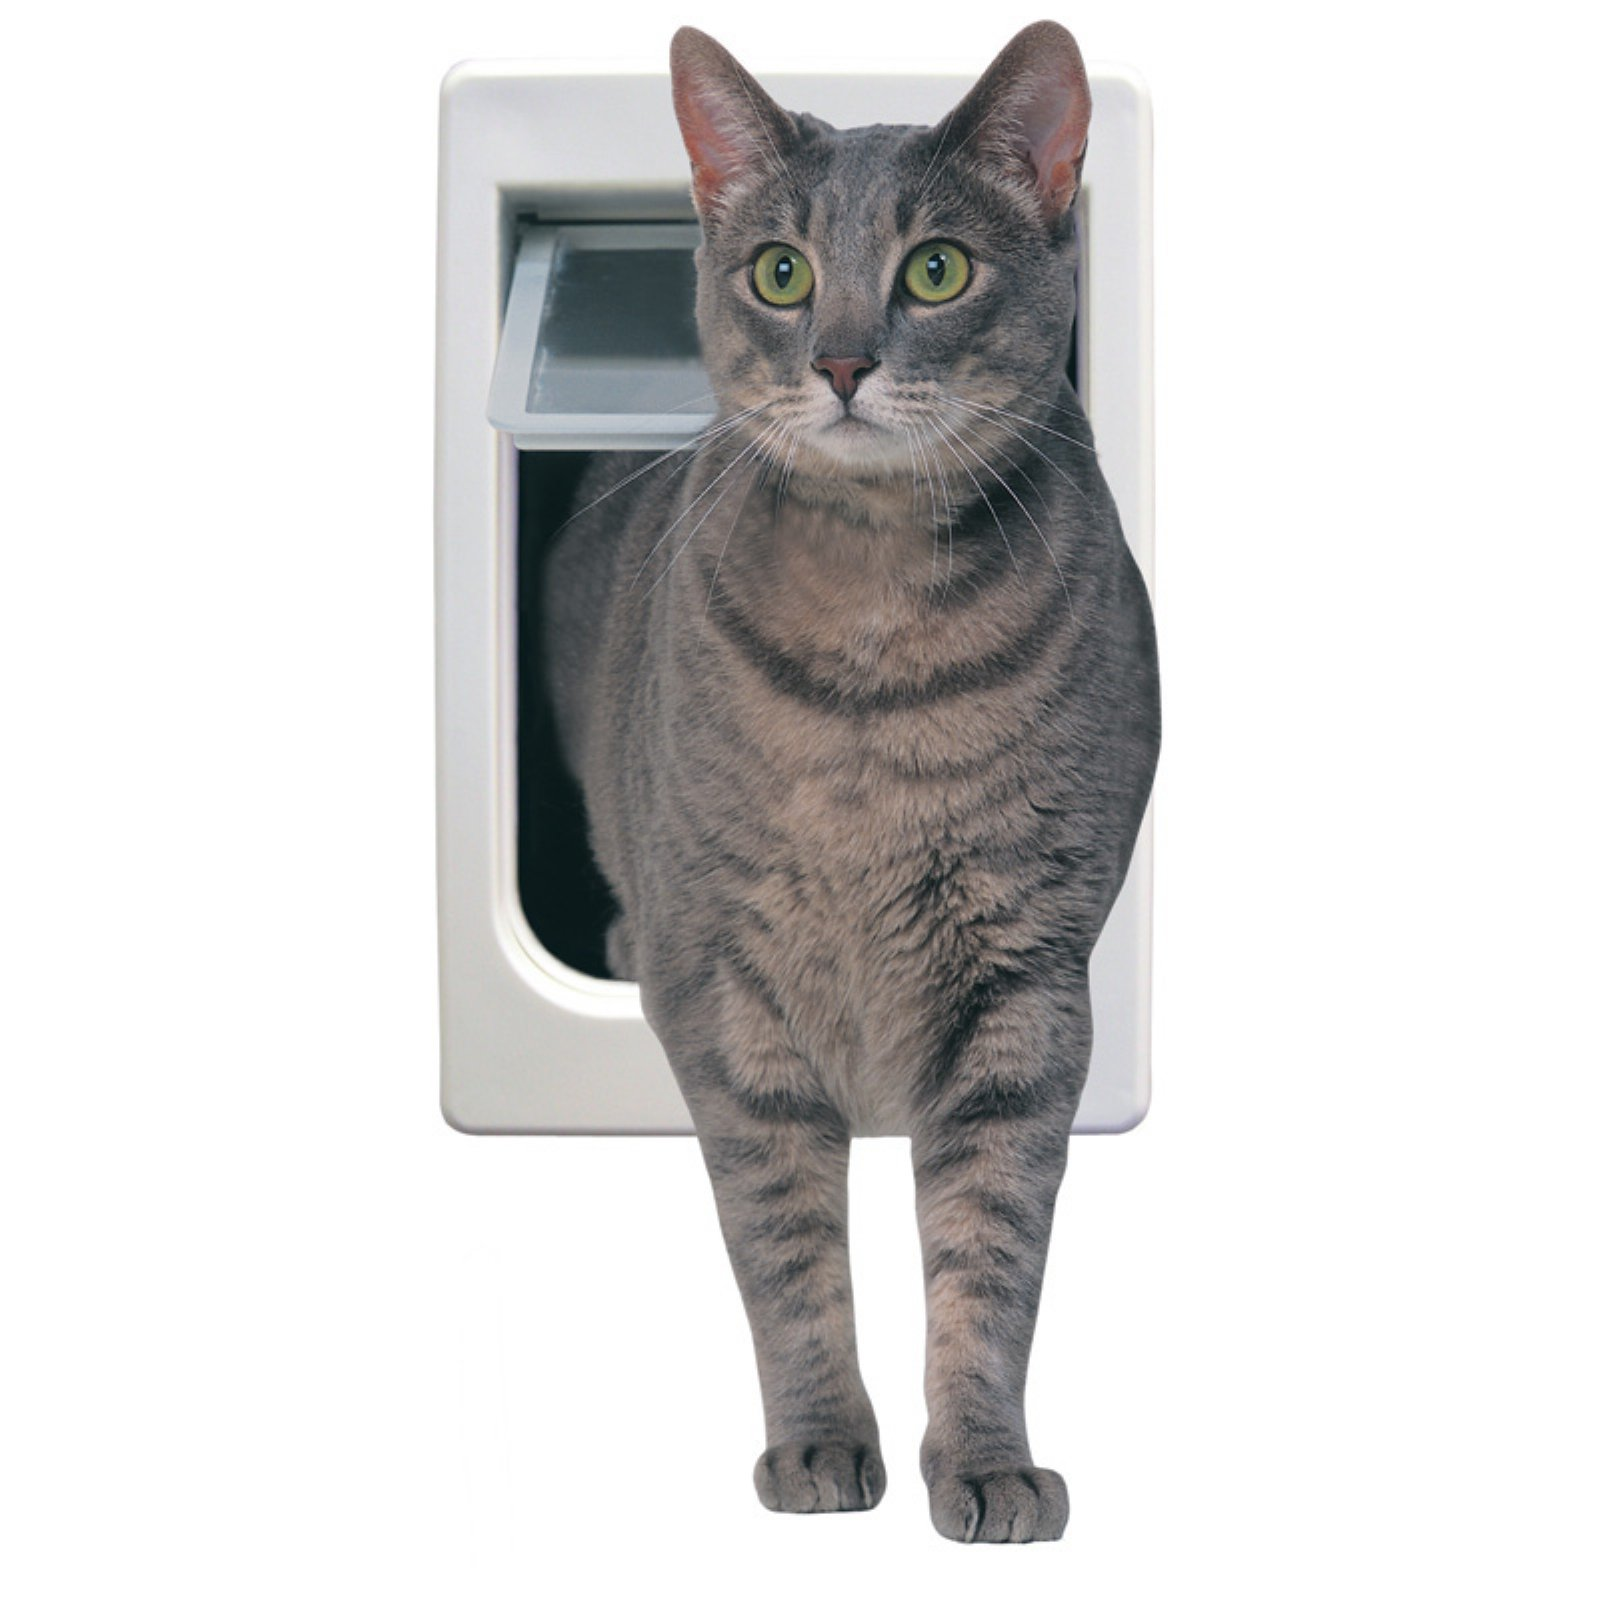 Ideal TubbyKat Storm Door Cat Door